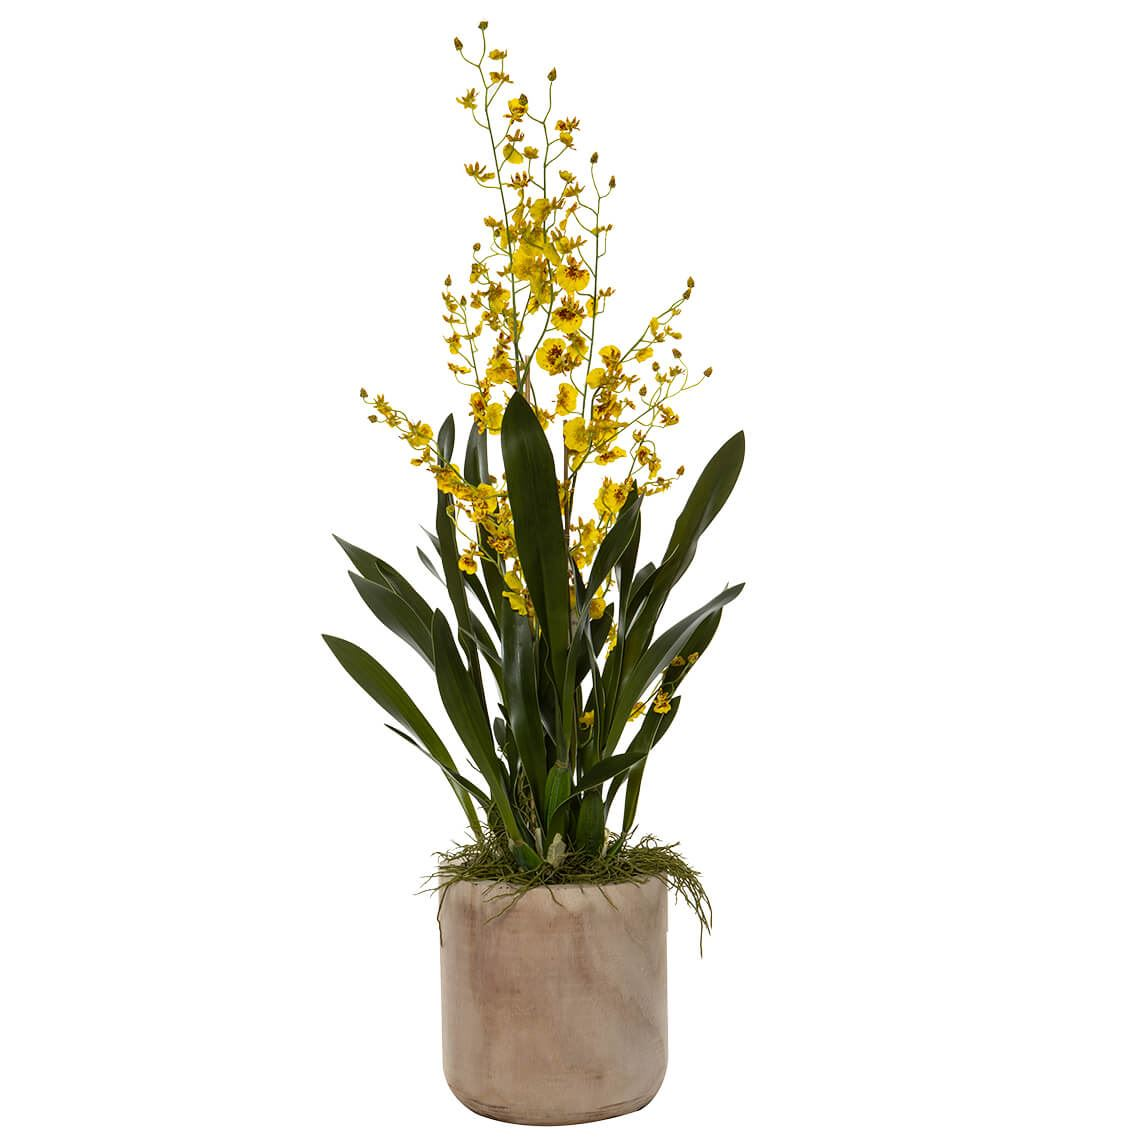 Dancing Orchid Size W 50cm x D 61cm x H 100cm in Yellow Plastic/Wood Freedom